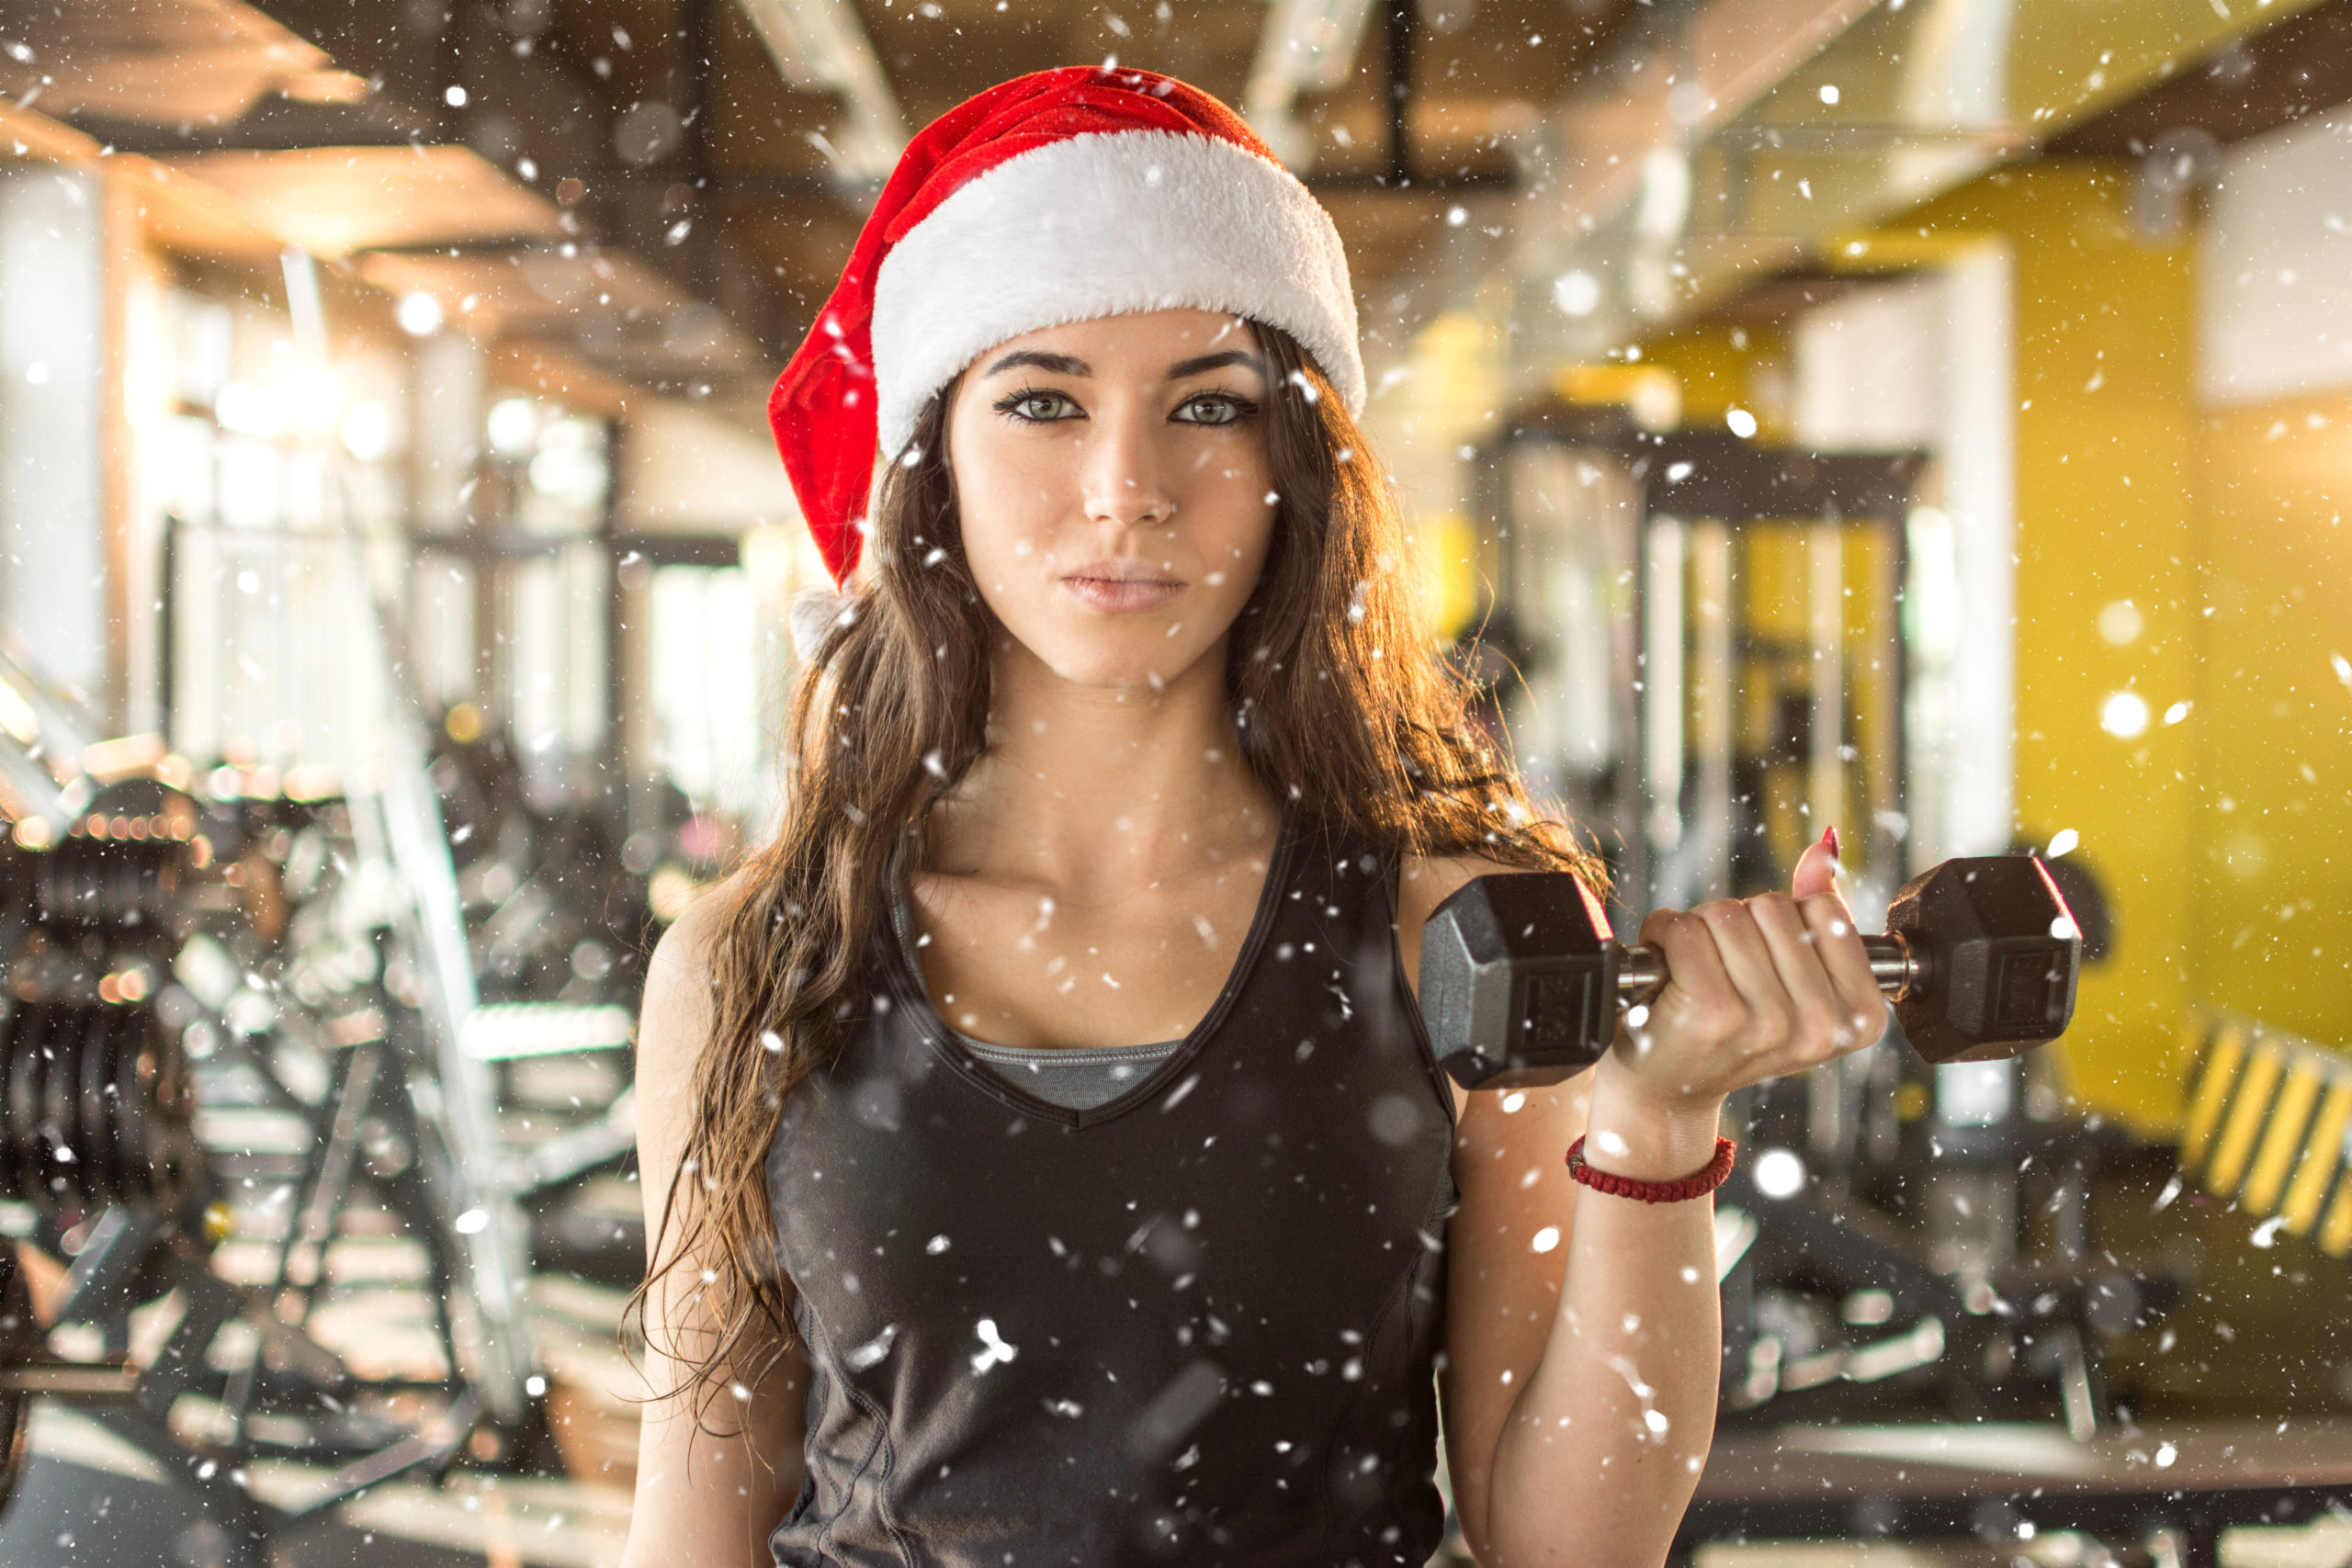 5 Simple Ways to Reach Your Fitness Goals During the Holiday Season